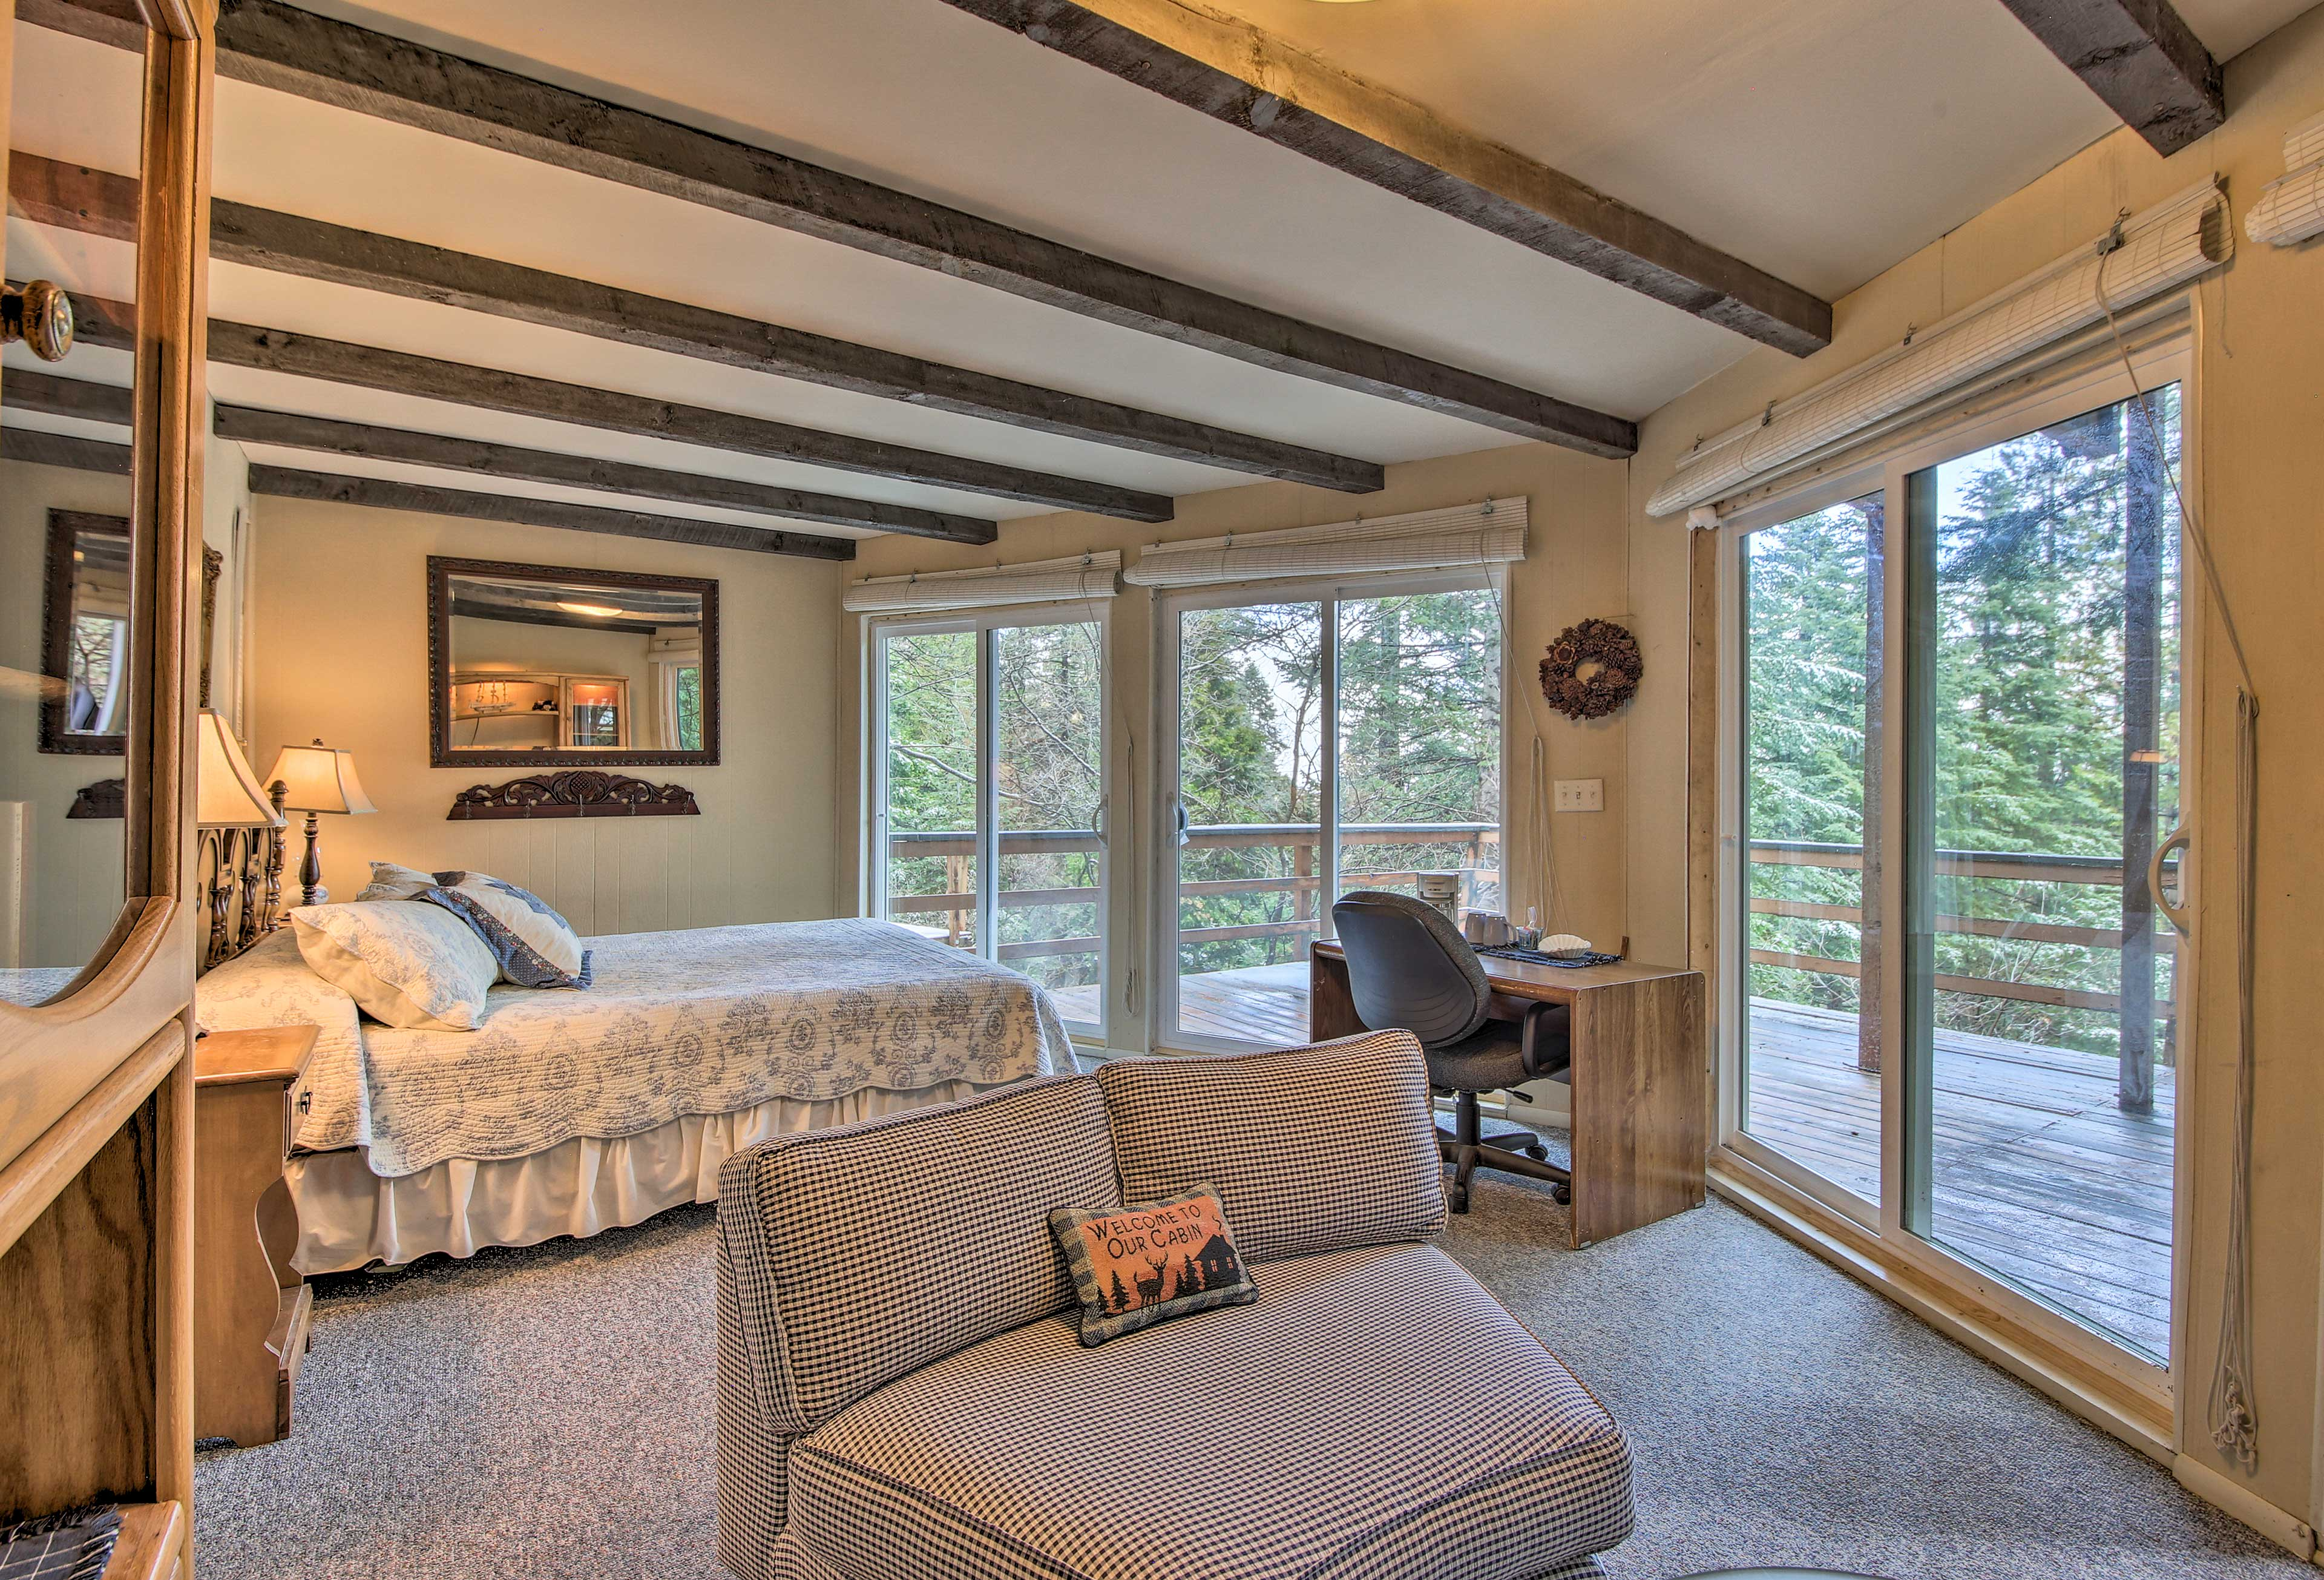 This separate room will comfortably accommodate 2 additional guests.